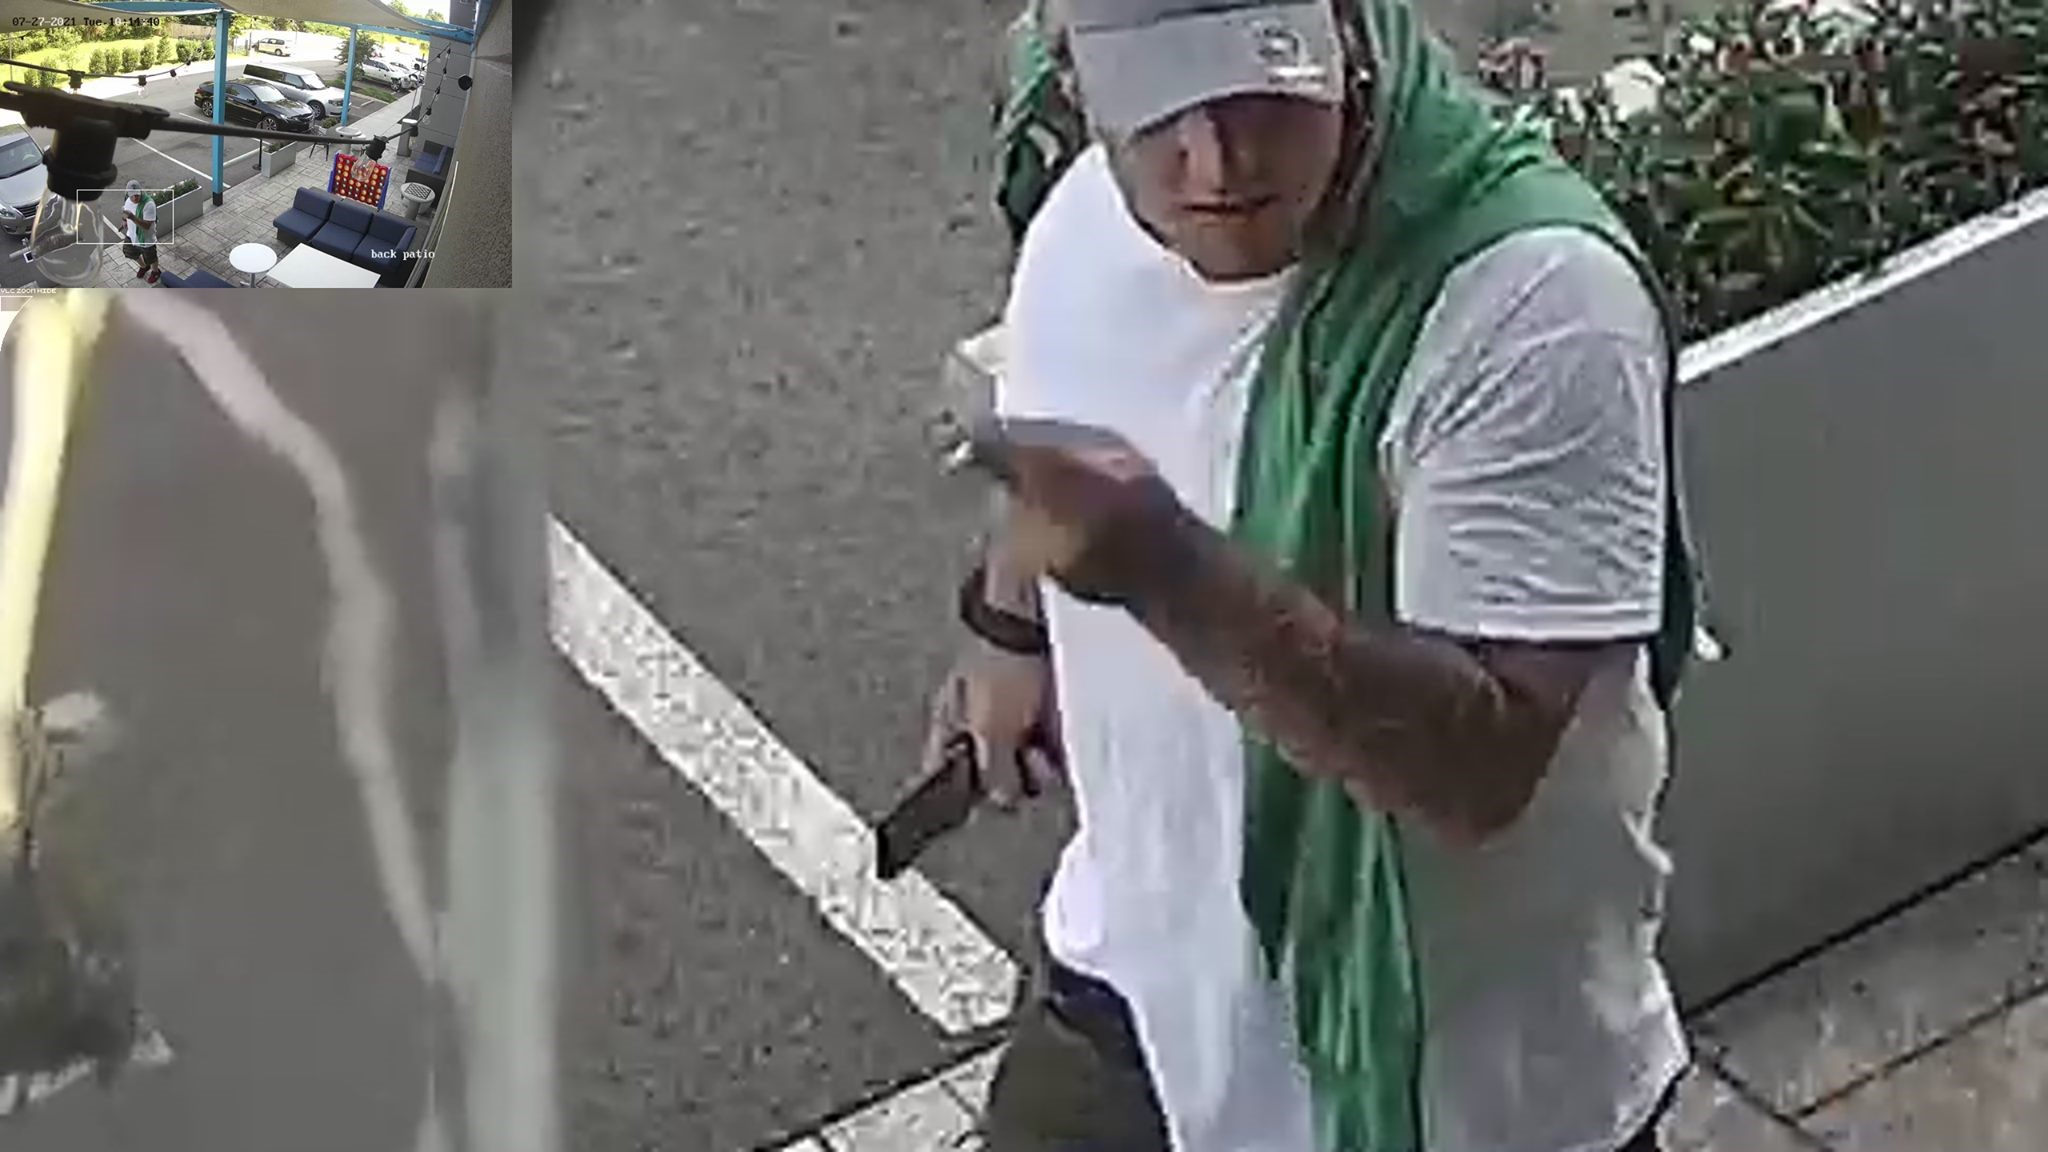 Knoxville Police Searching for Man Suspected of Stealing Catalytic Converter